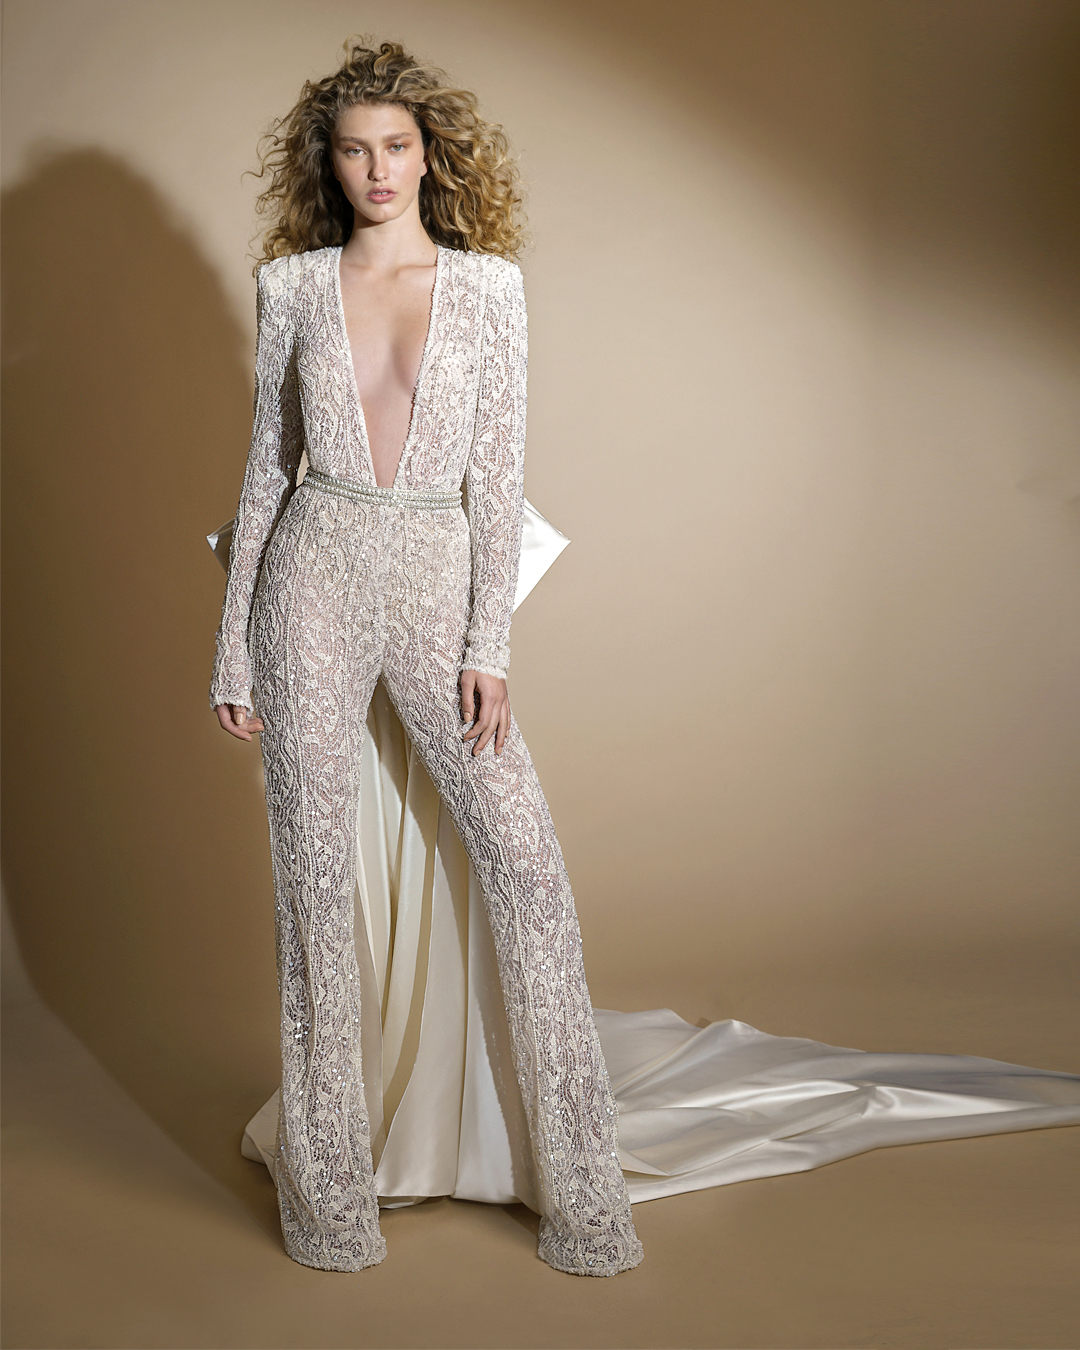 5 Chic Wedding Suits for Brides  Martha Stewart